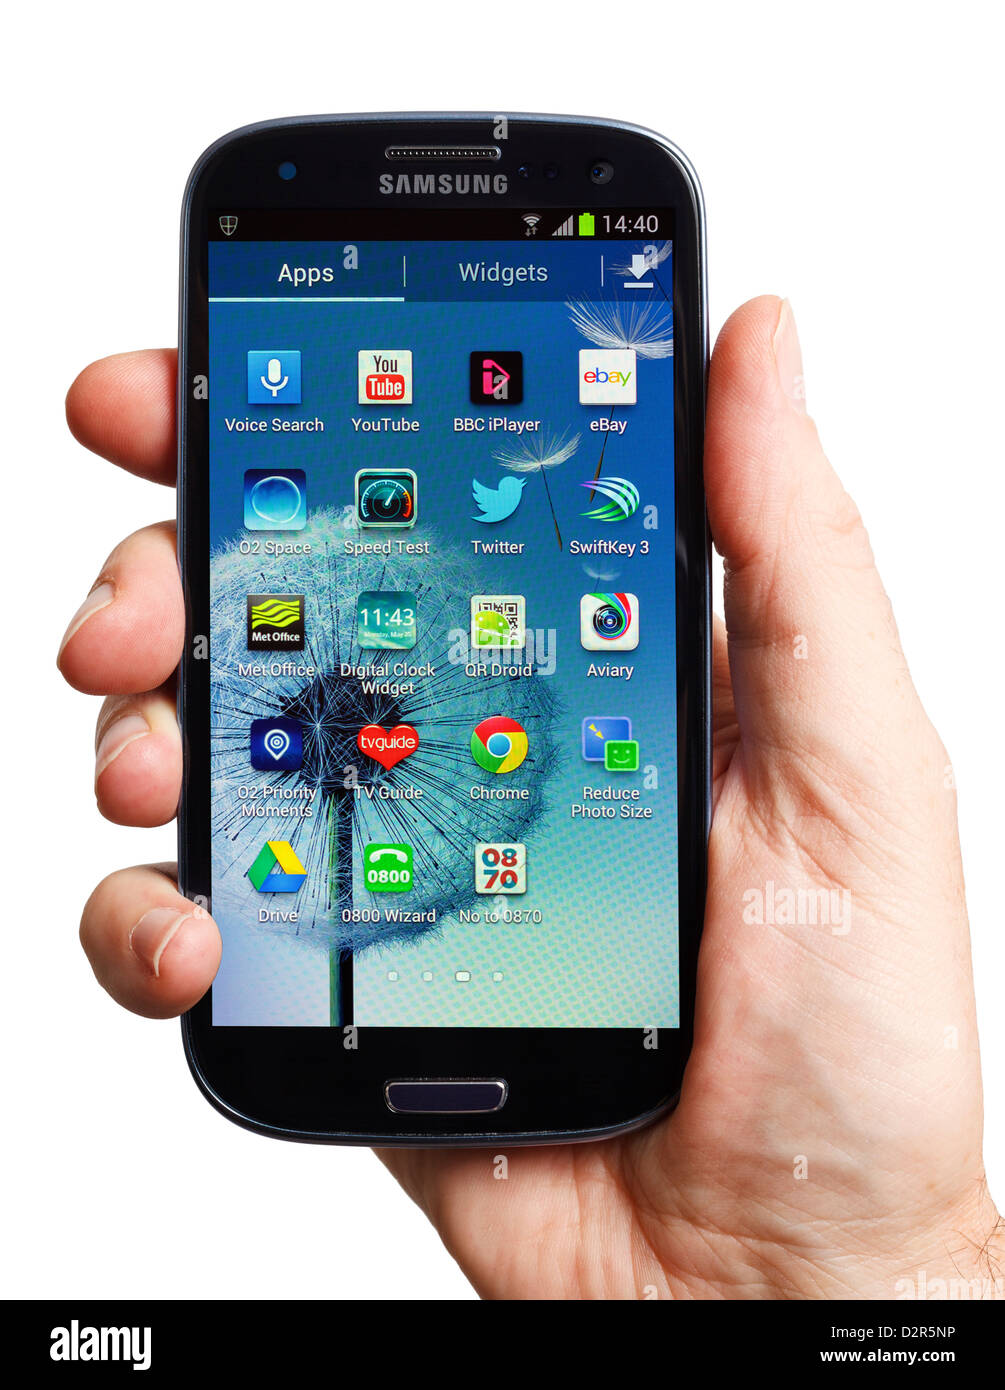 how to get apps on a samsung galaxy s3